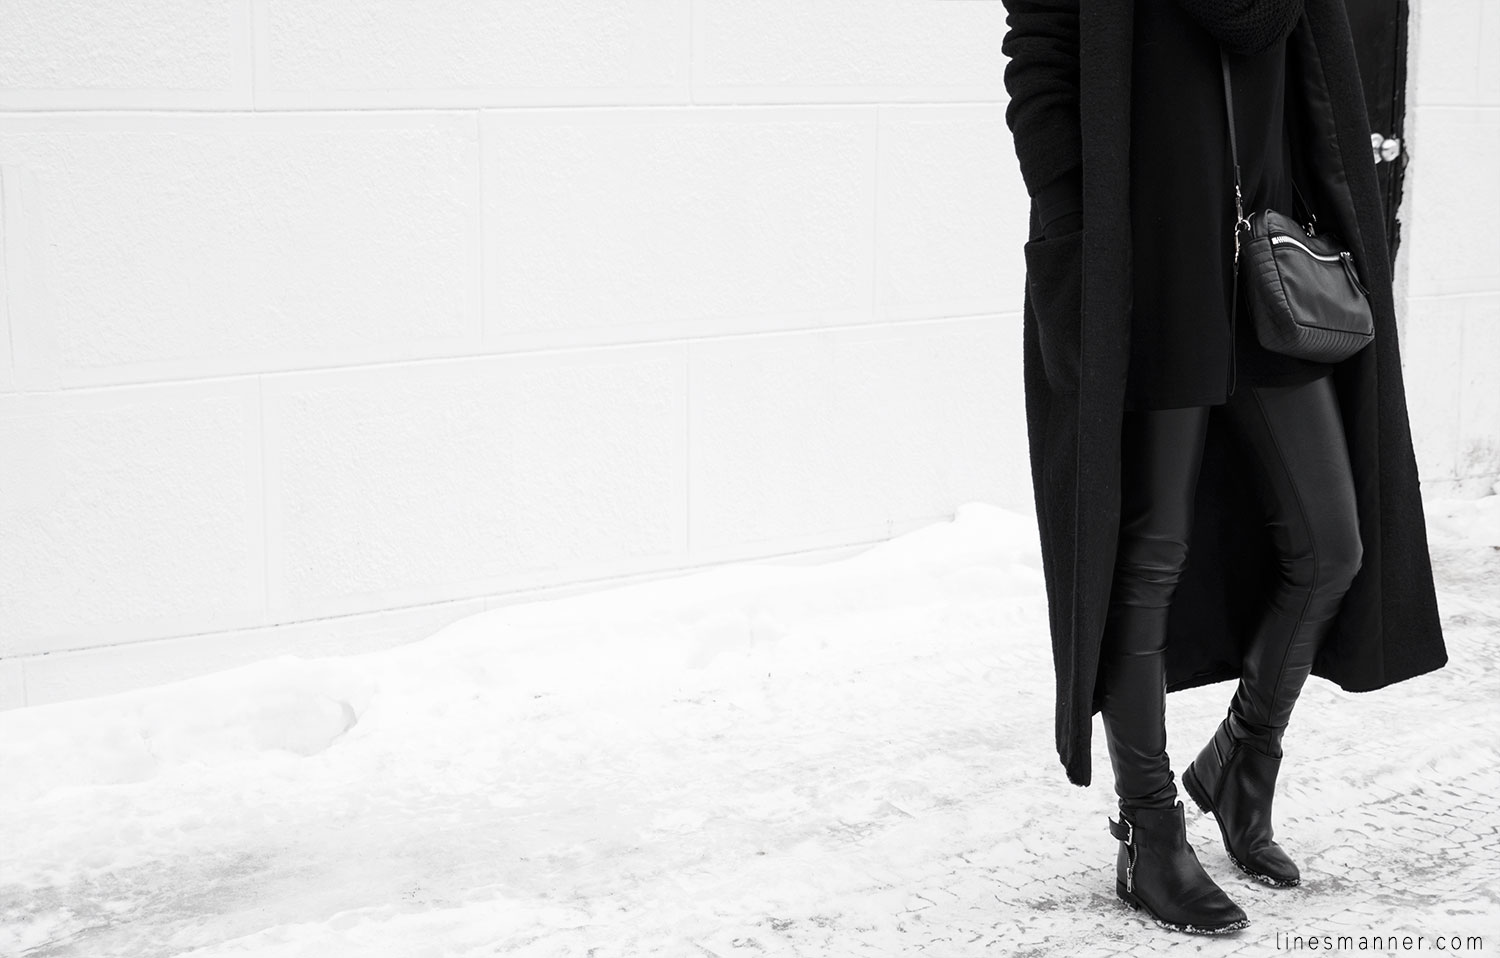 Lines-Manner-All_black_everything-monochrome-essentials-oversize-fit-textures-minimal-details-basics-staples-kayering-bundled-enveloped-silver-leather-11